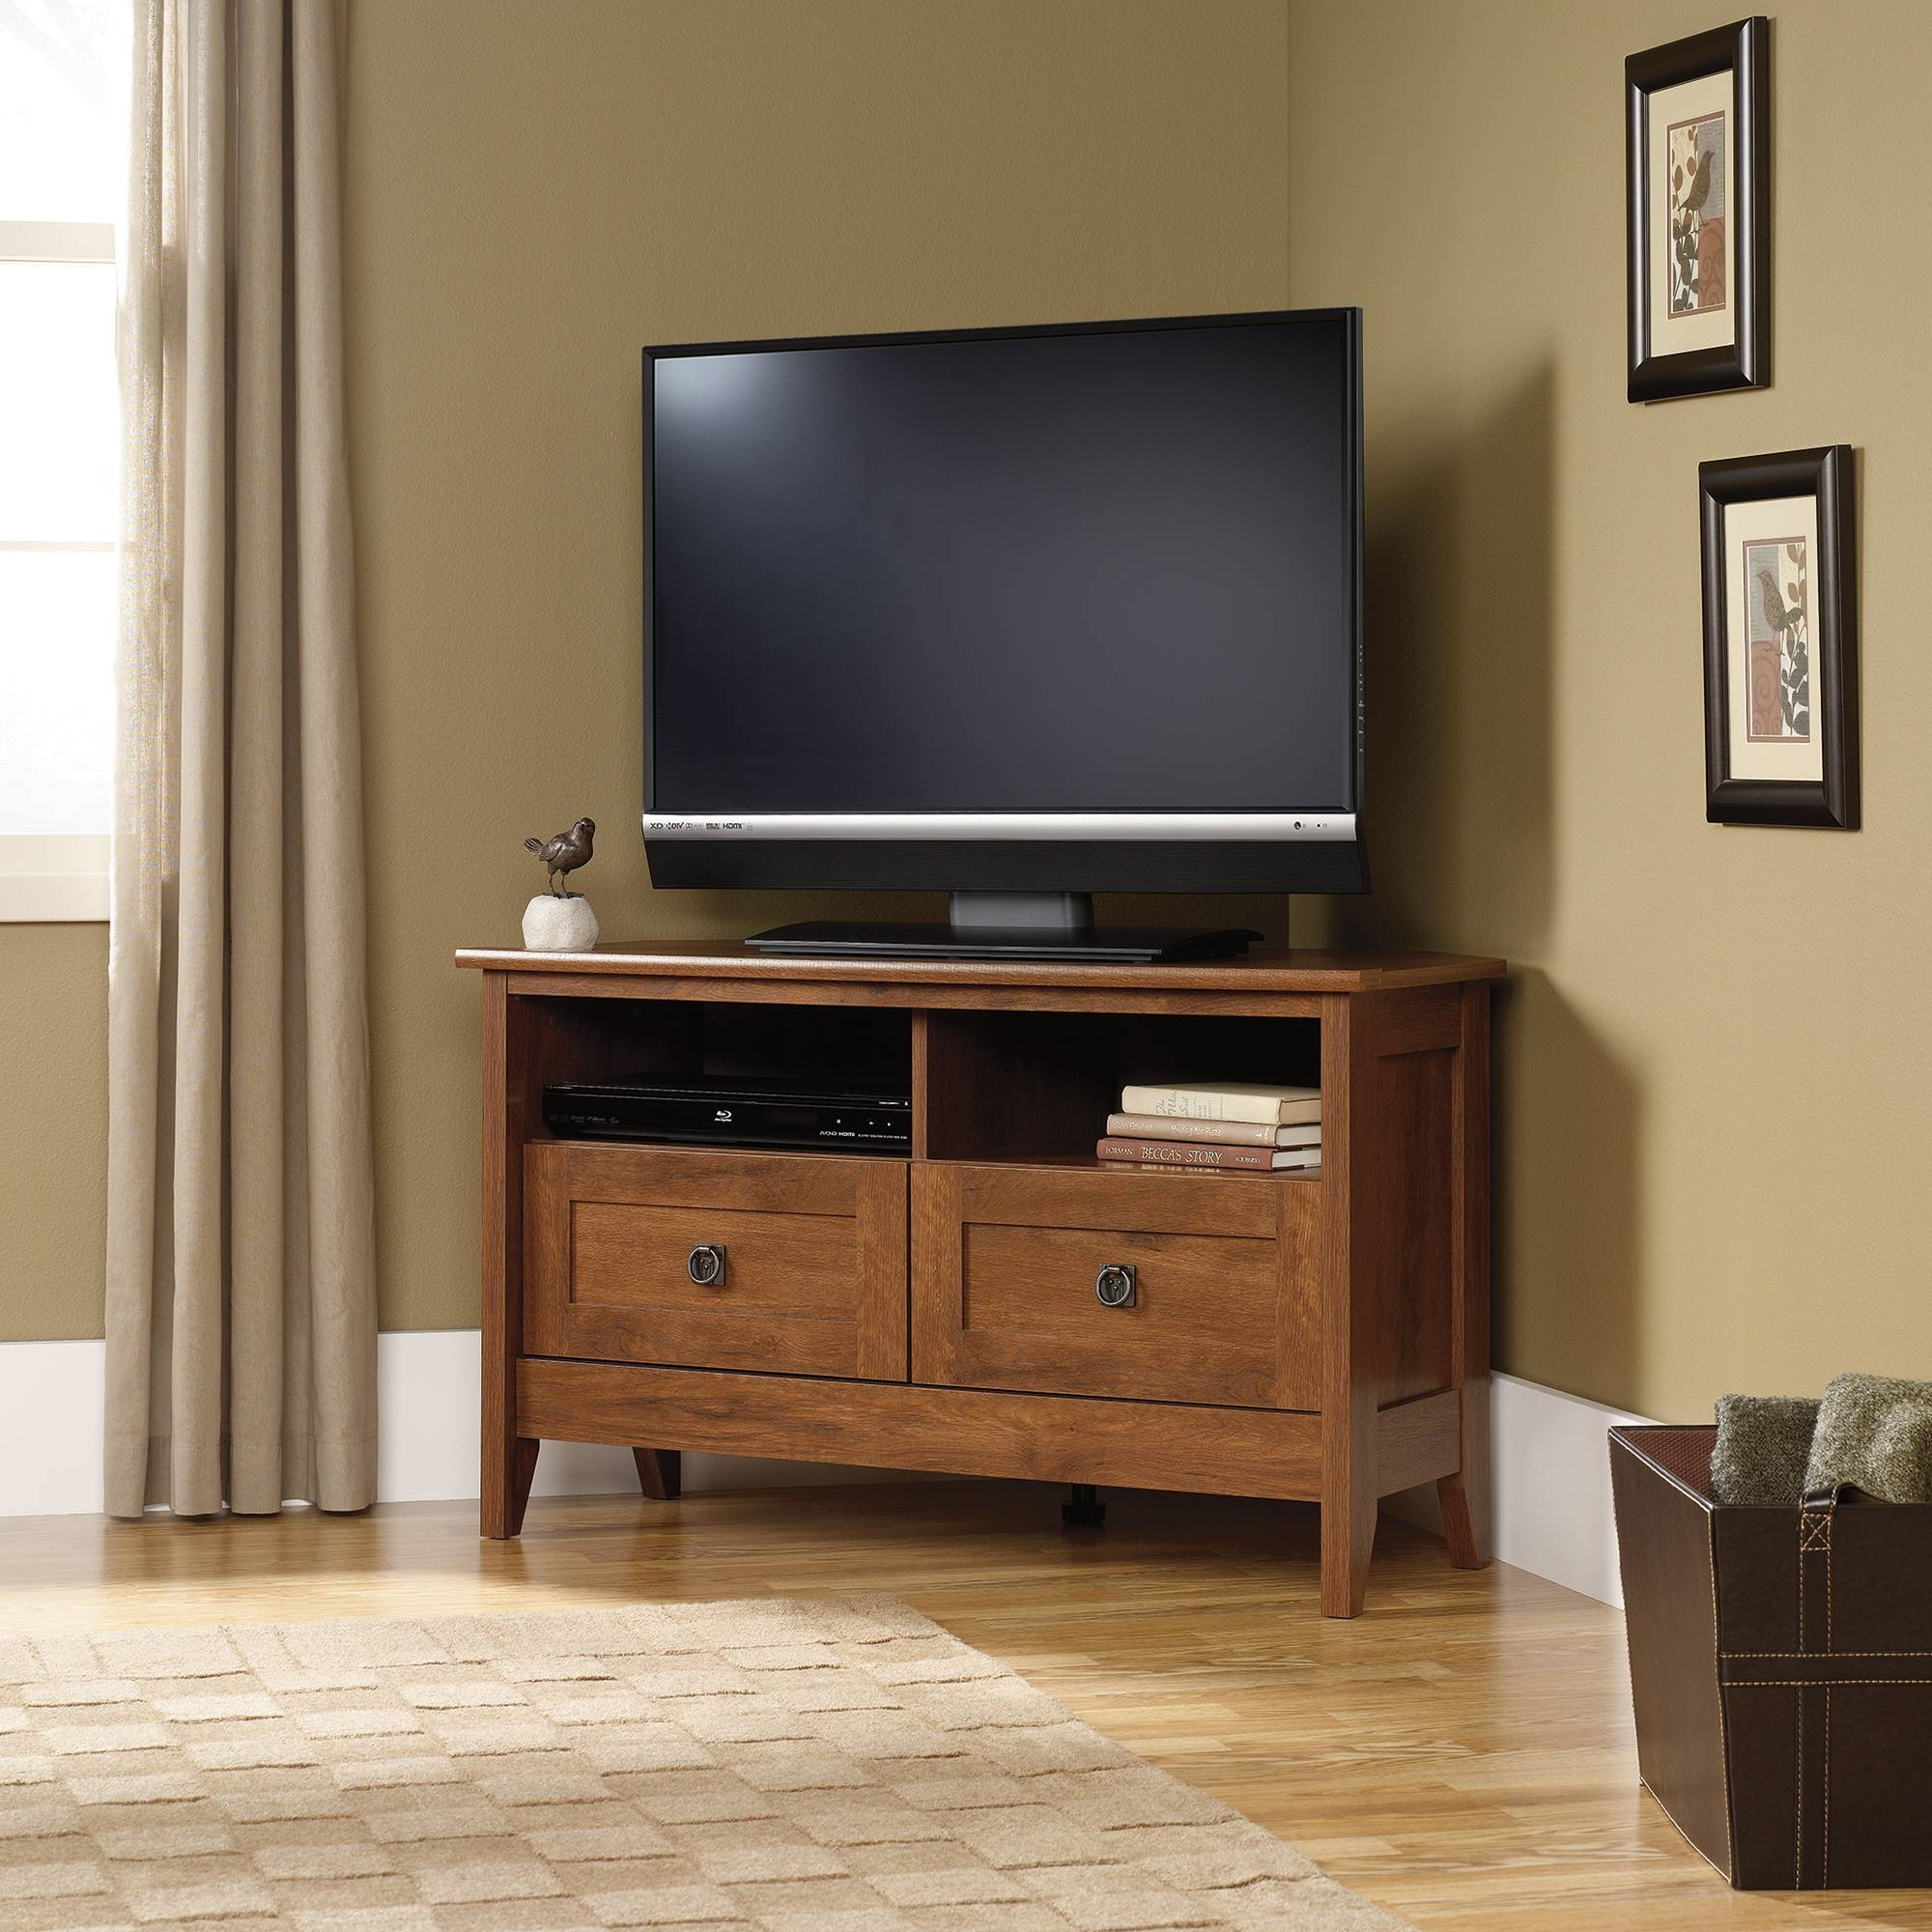 Sauder Select | Corner Tv Stand | 410627 | Sauder throughout Corner Tv Stands With Drawers (Image 10 of 15)